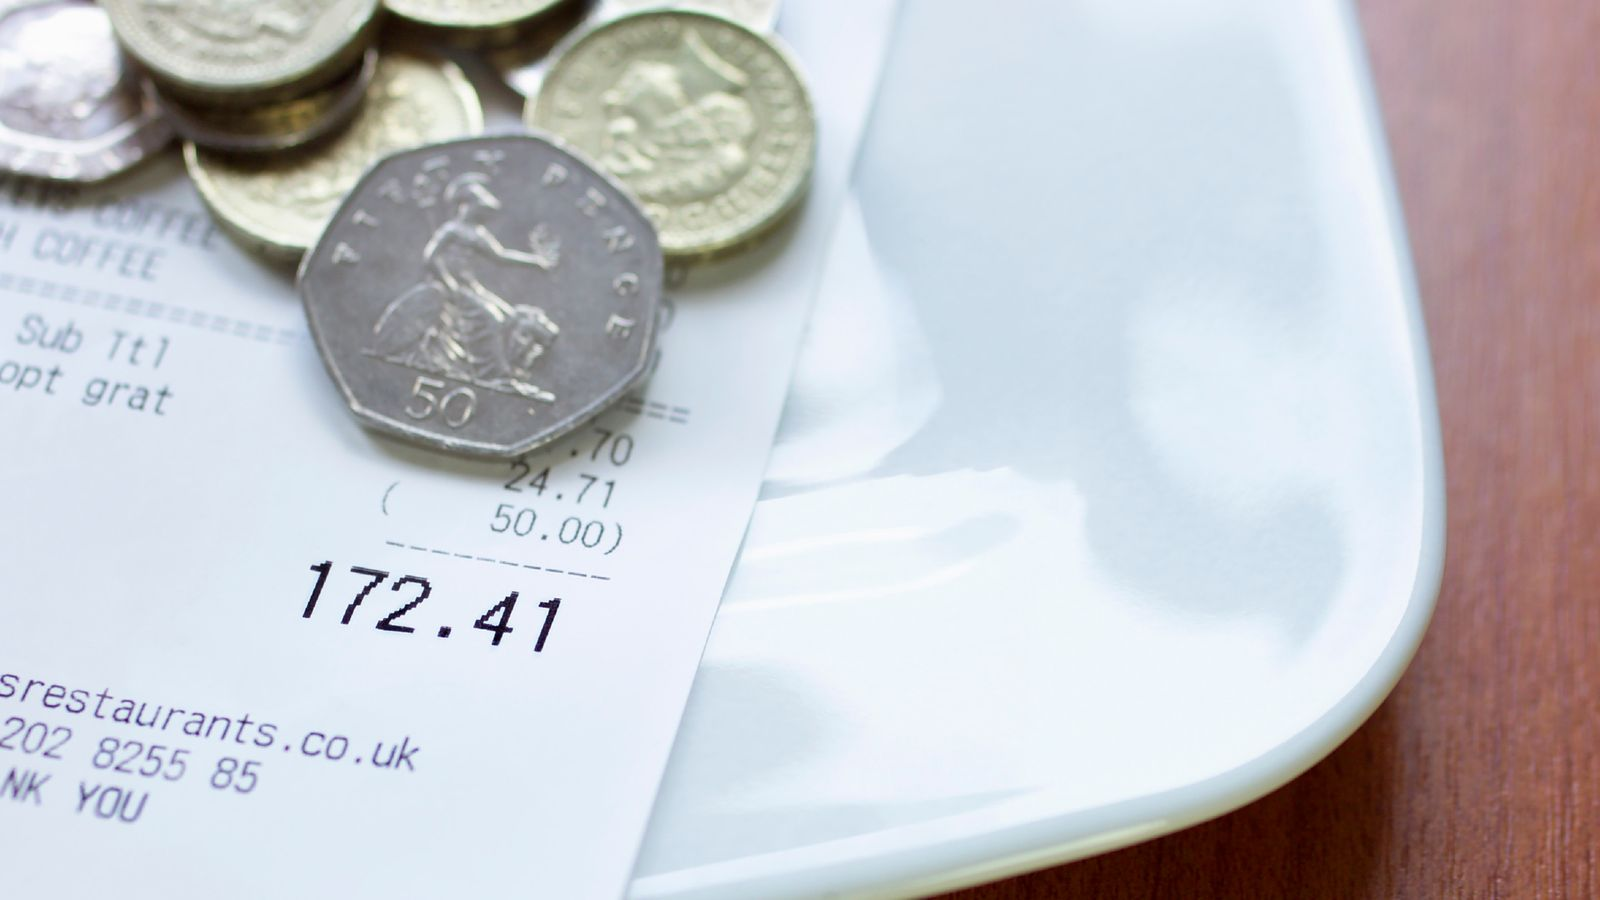 New laws to make sure hospitality workers can keep their tips - Sky News